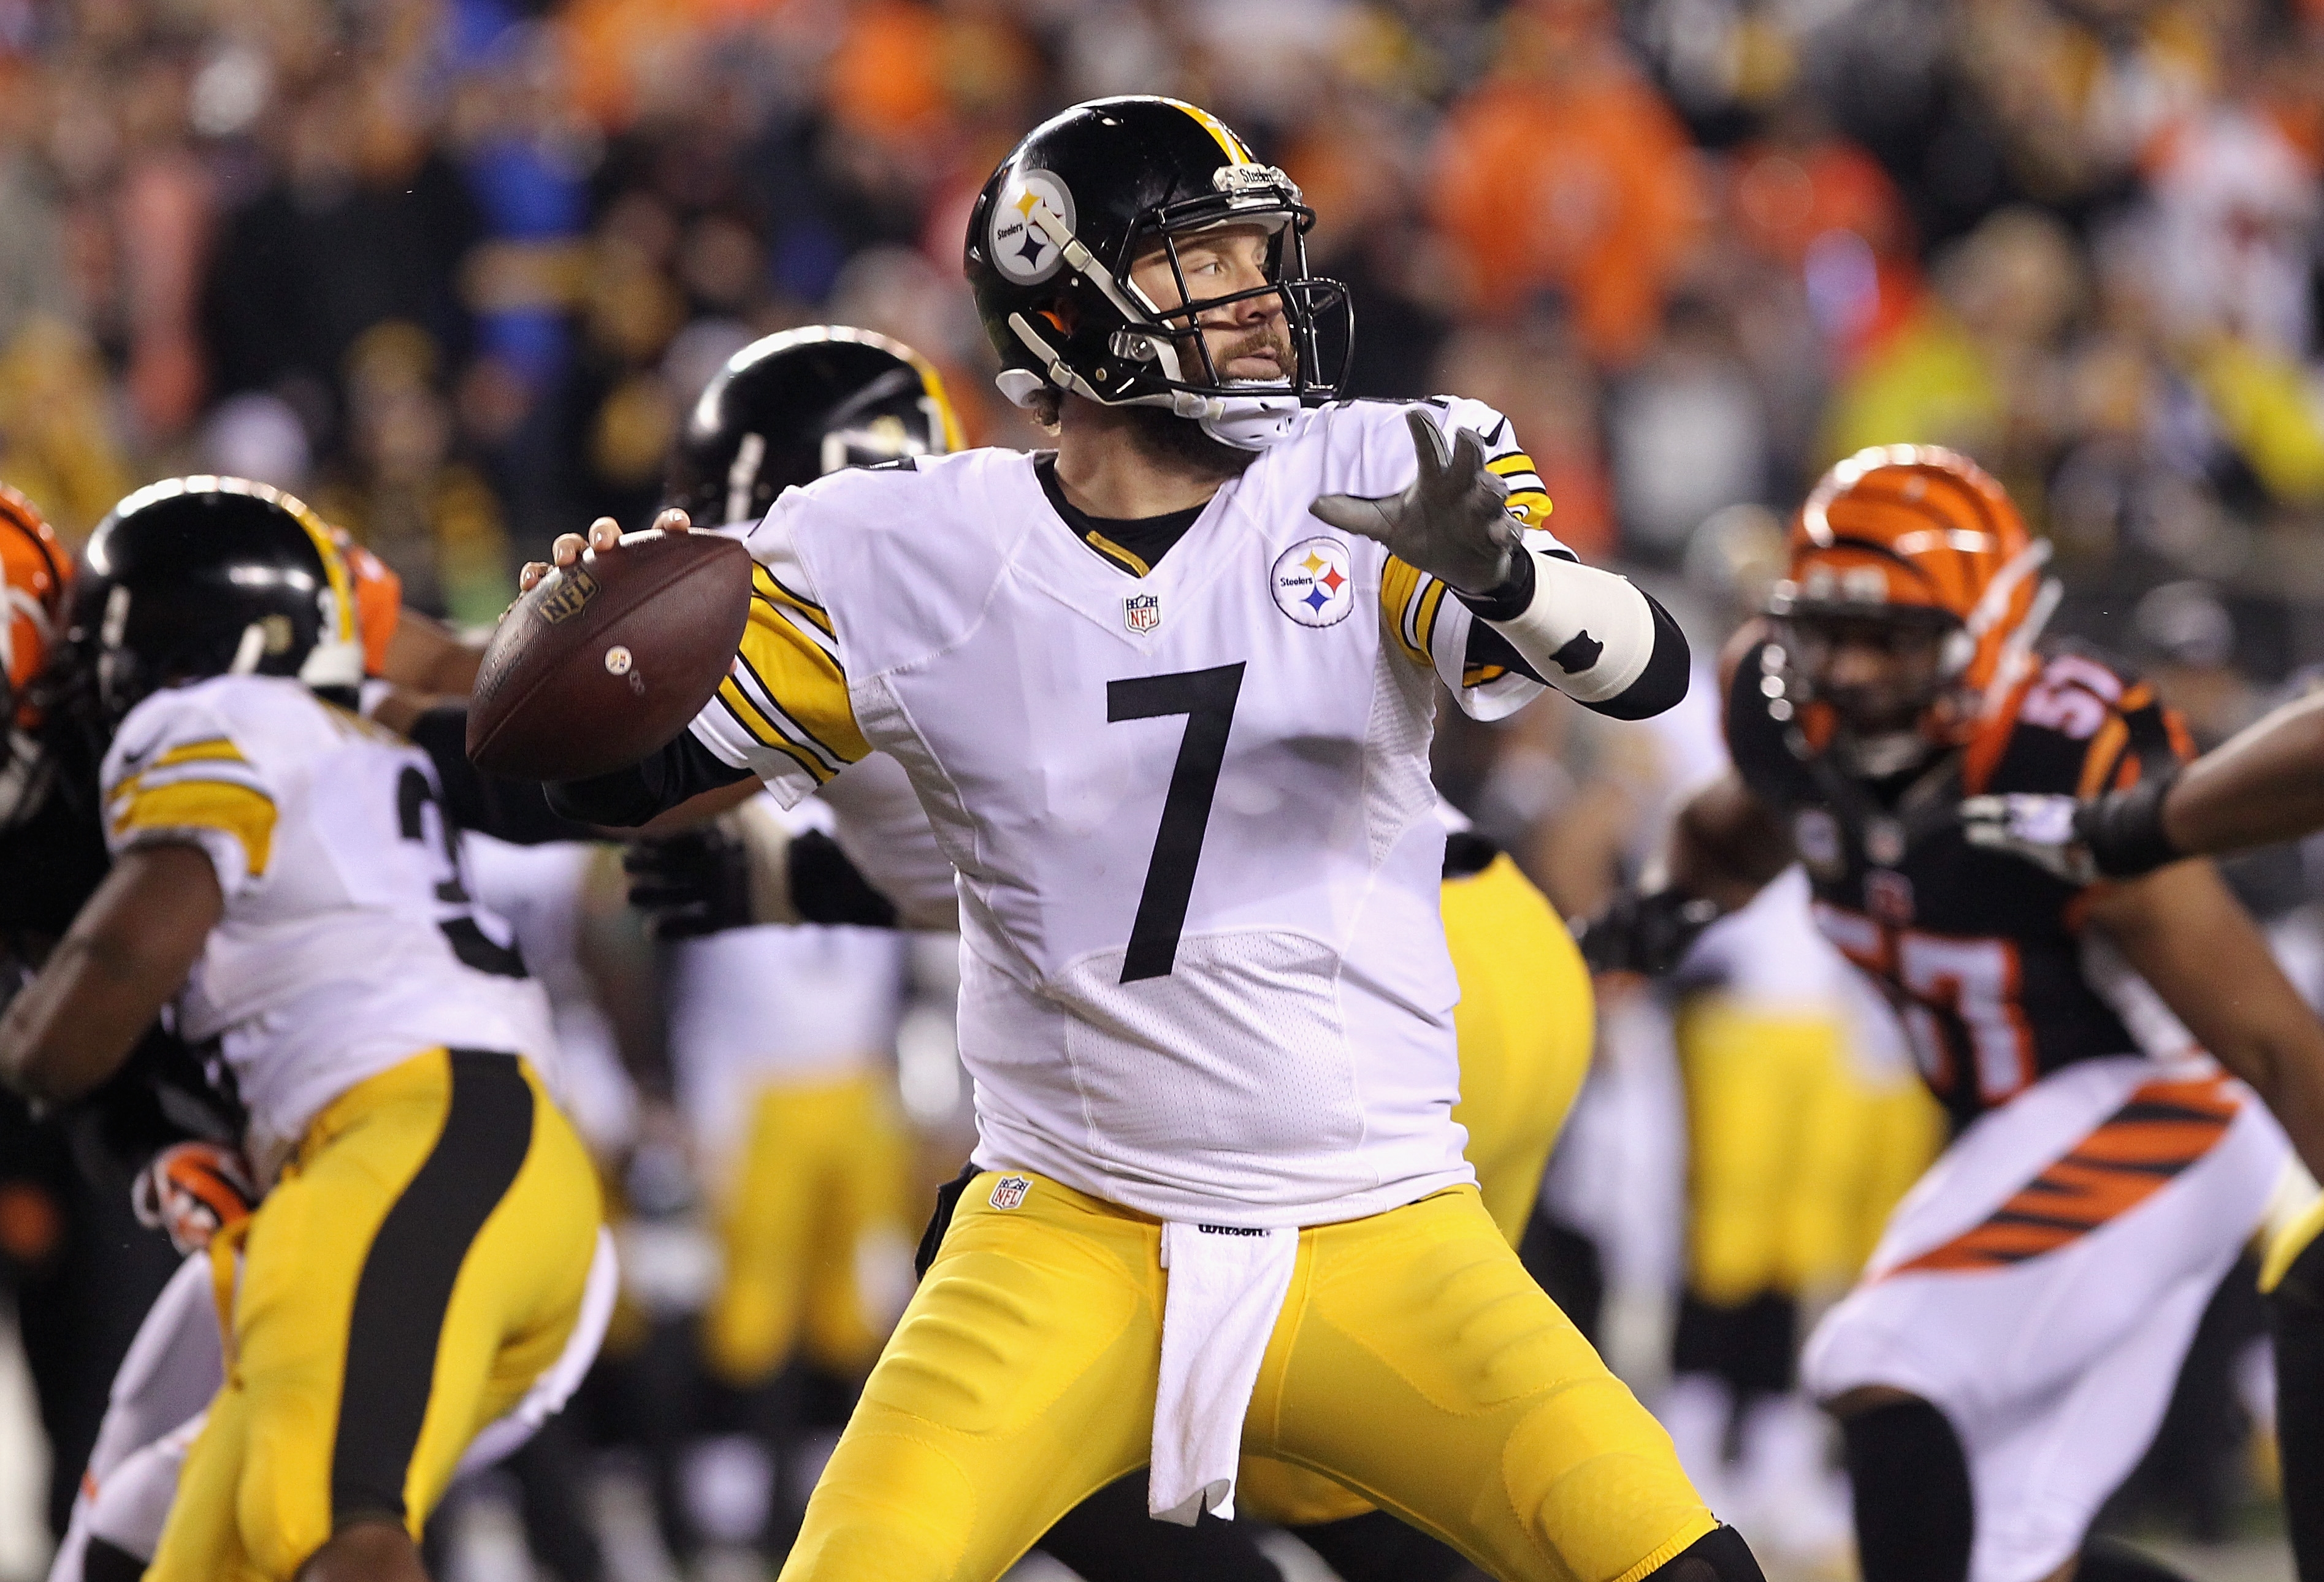 CINCINNATI, OH - JANUARY 09:  Ben Roethlisberger #7 of the Pittsburgh Steelers looks to pass in the first half against the Cincinnati Bengals during the AFC Wild Card Playoff game at Paul Brown Stadium on January 9, 2016 in Cincinnati, Ohio.  (Photo by Dylan Buell/Getty Images)